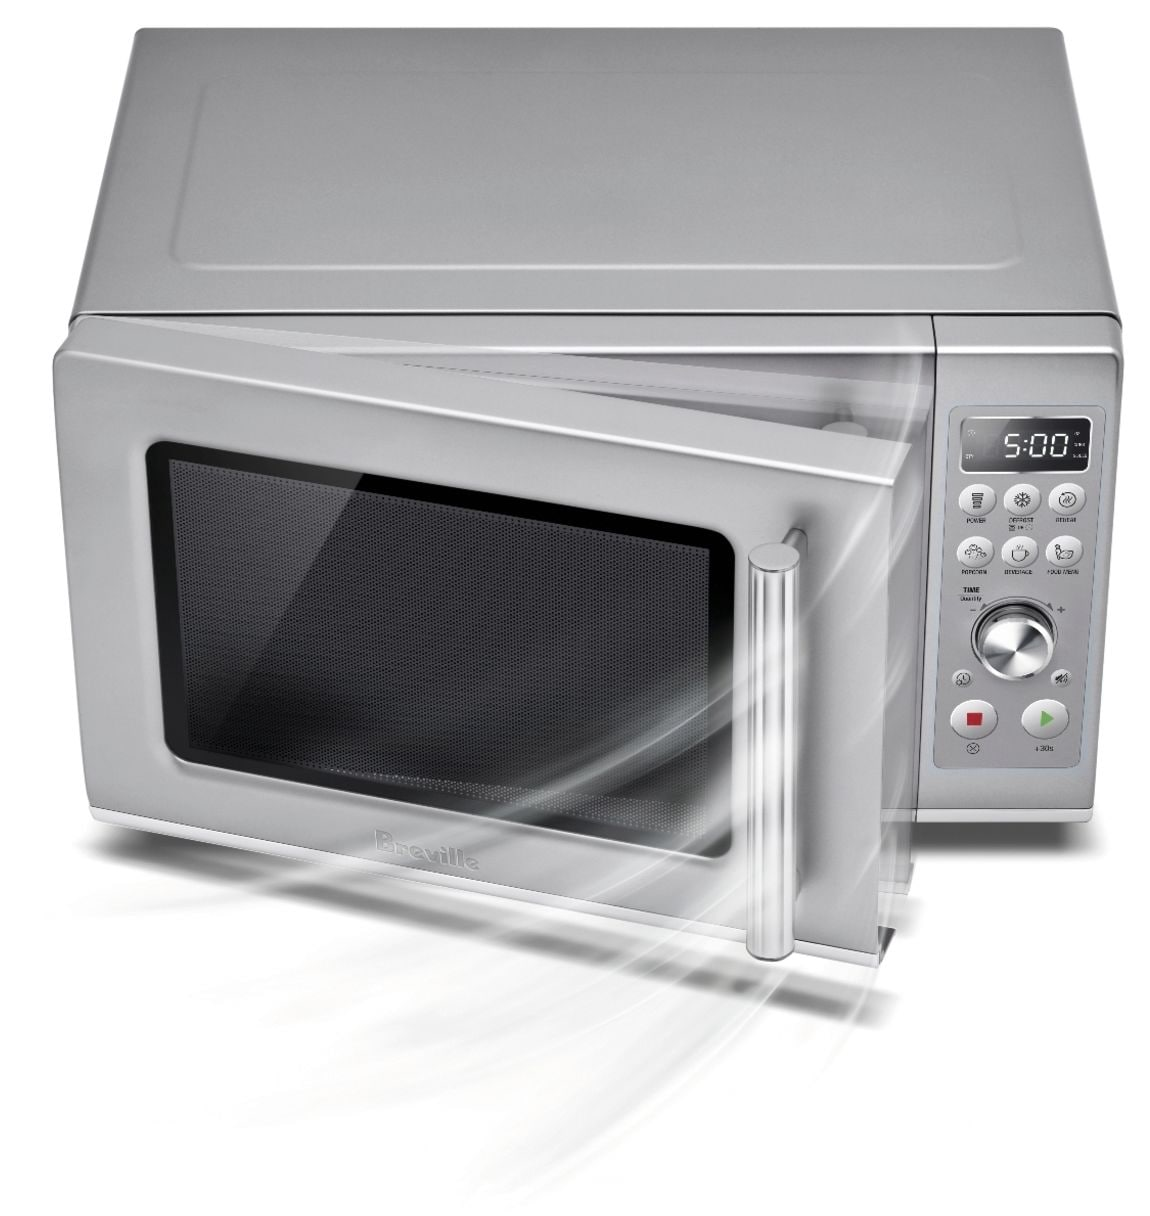 breville the compact wave soft close 0 9 cu ft microwave brushed stainless steel